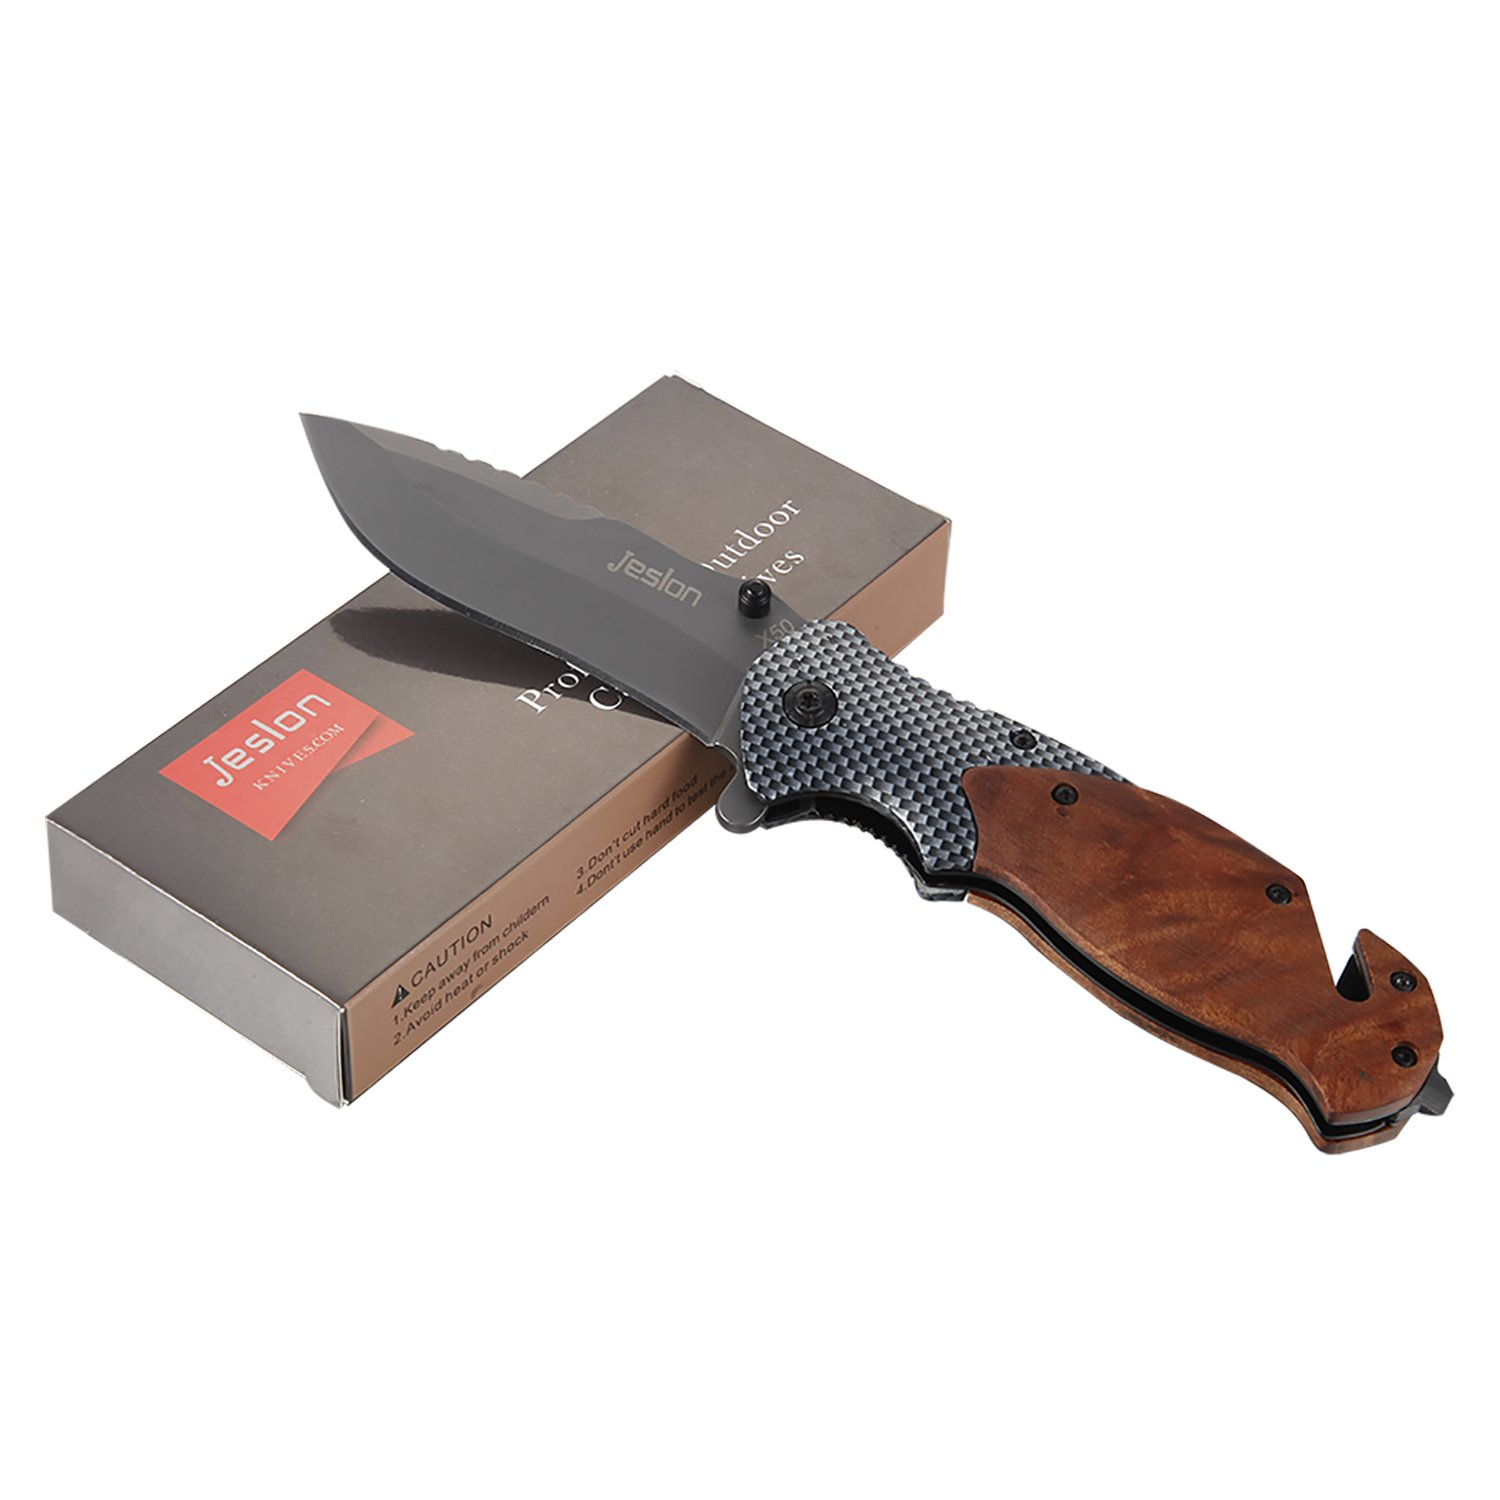 Jeslon Spring Assisted Opening Tactical Folding Pocket Knife, Wood Handle 440C 57HRC Blade Good for Camping Survival and outdoor Activities. by Jeslon (Image #7)